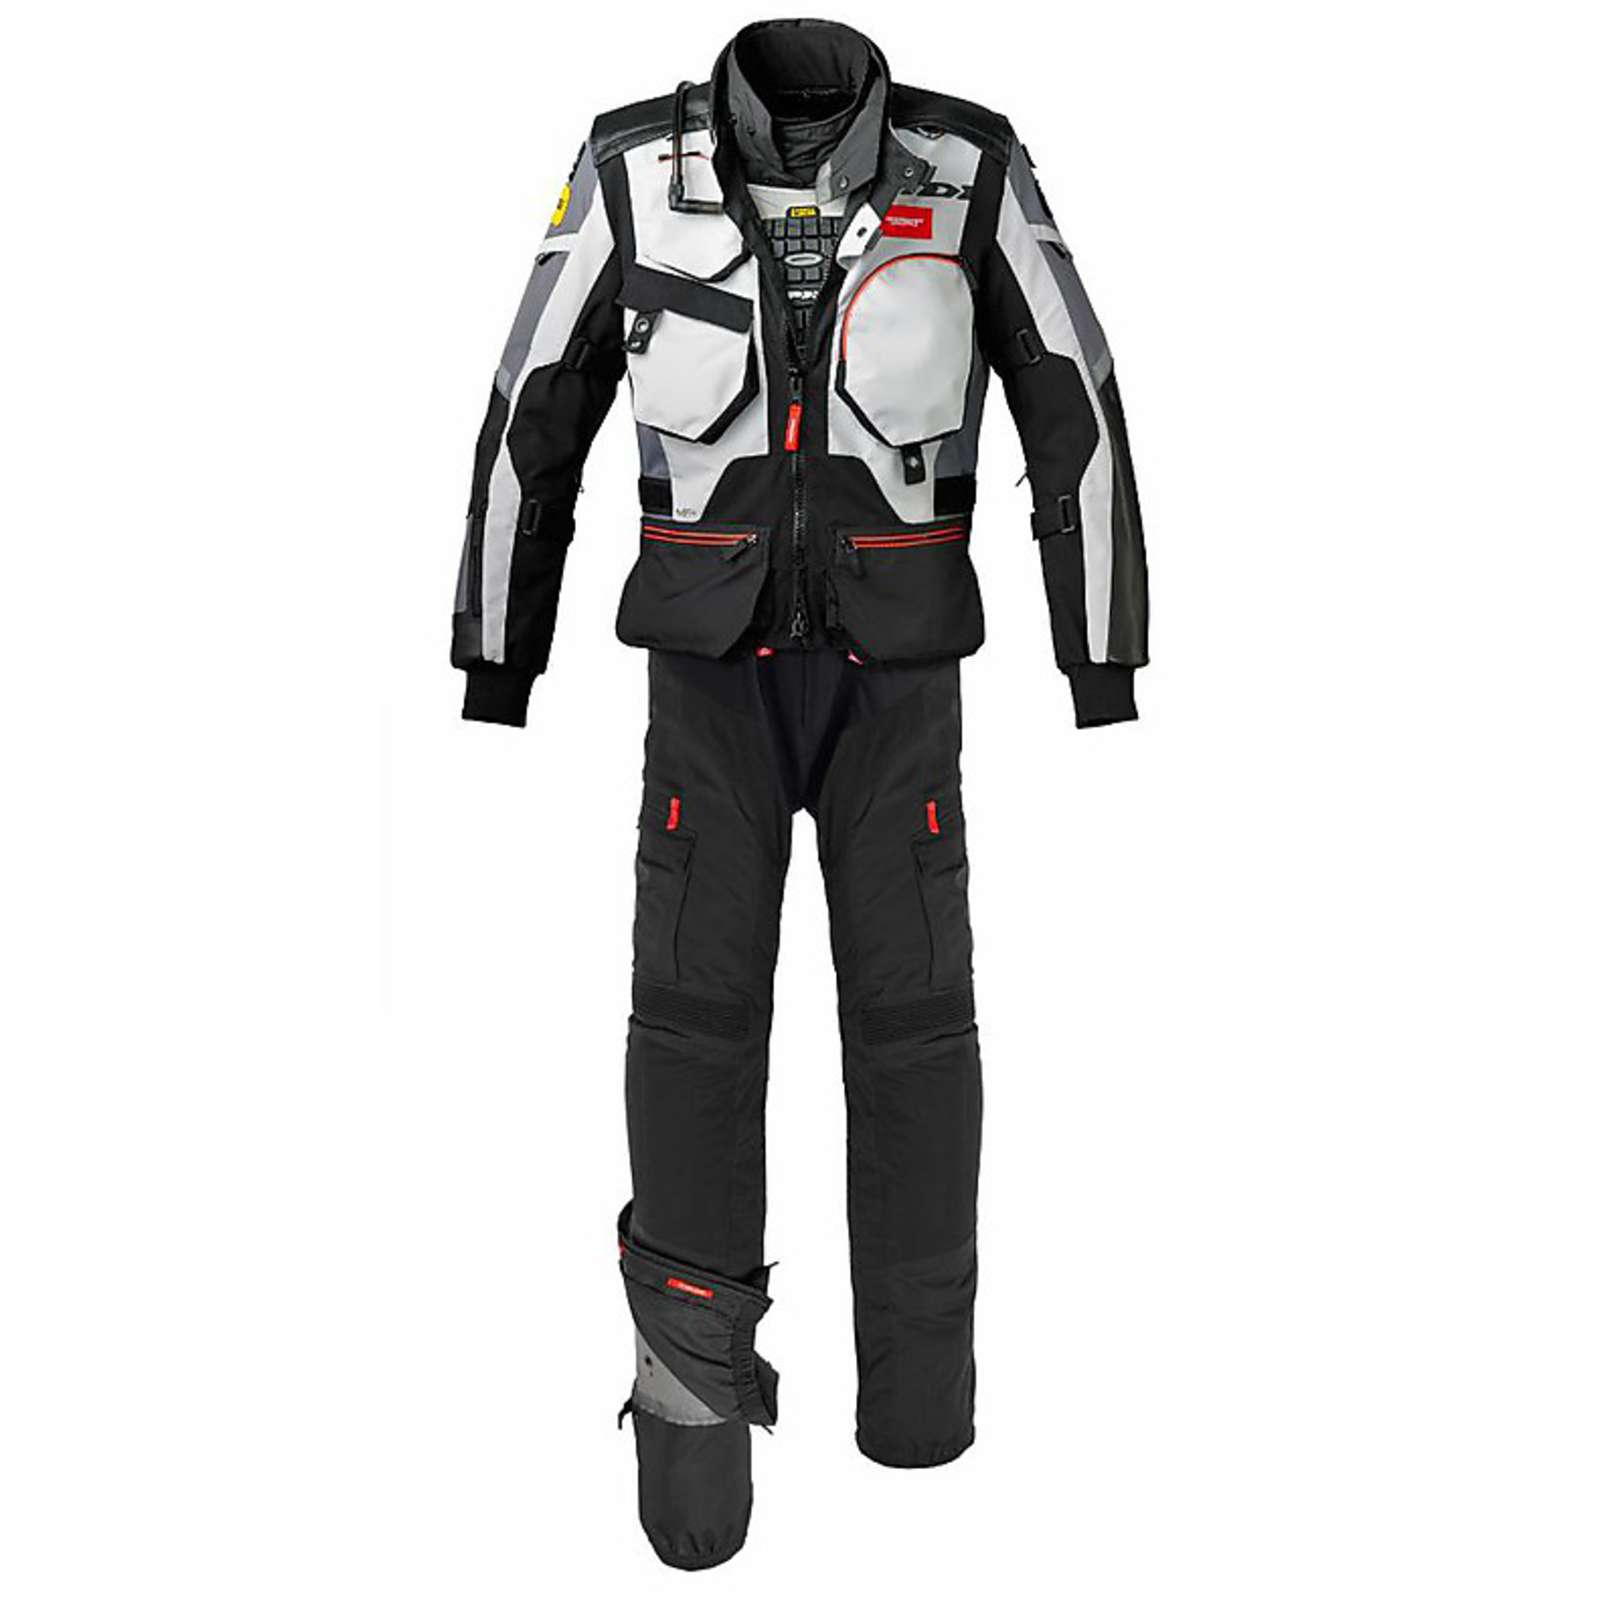 39132b6e65b H.T Raid H2Out Suit Jackets Waterproof Spidi dainese motorcycle ...